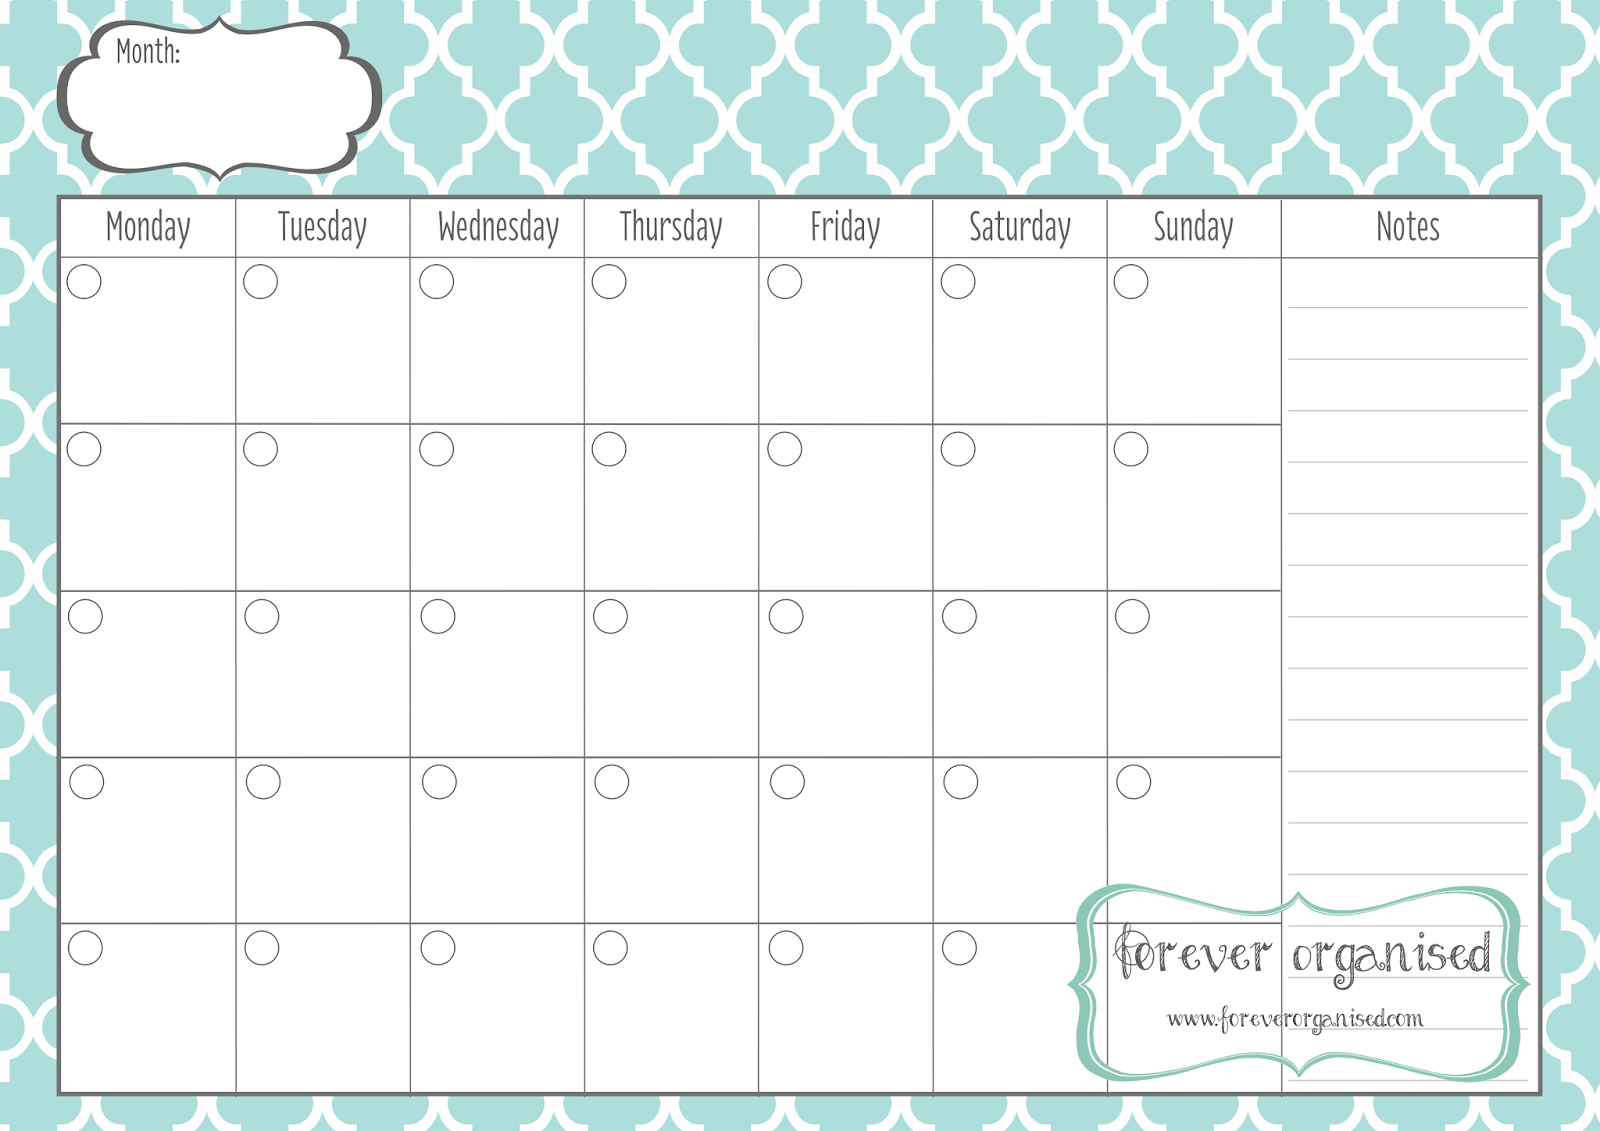 Calendar Monthly Print Out : Monthly calendar to print templates free printable